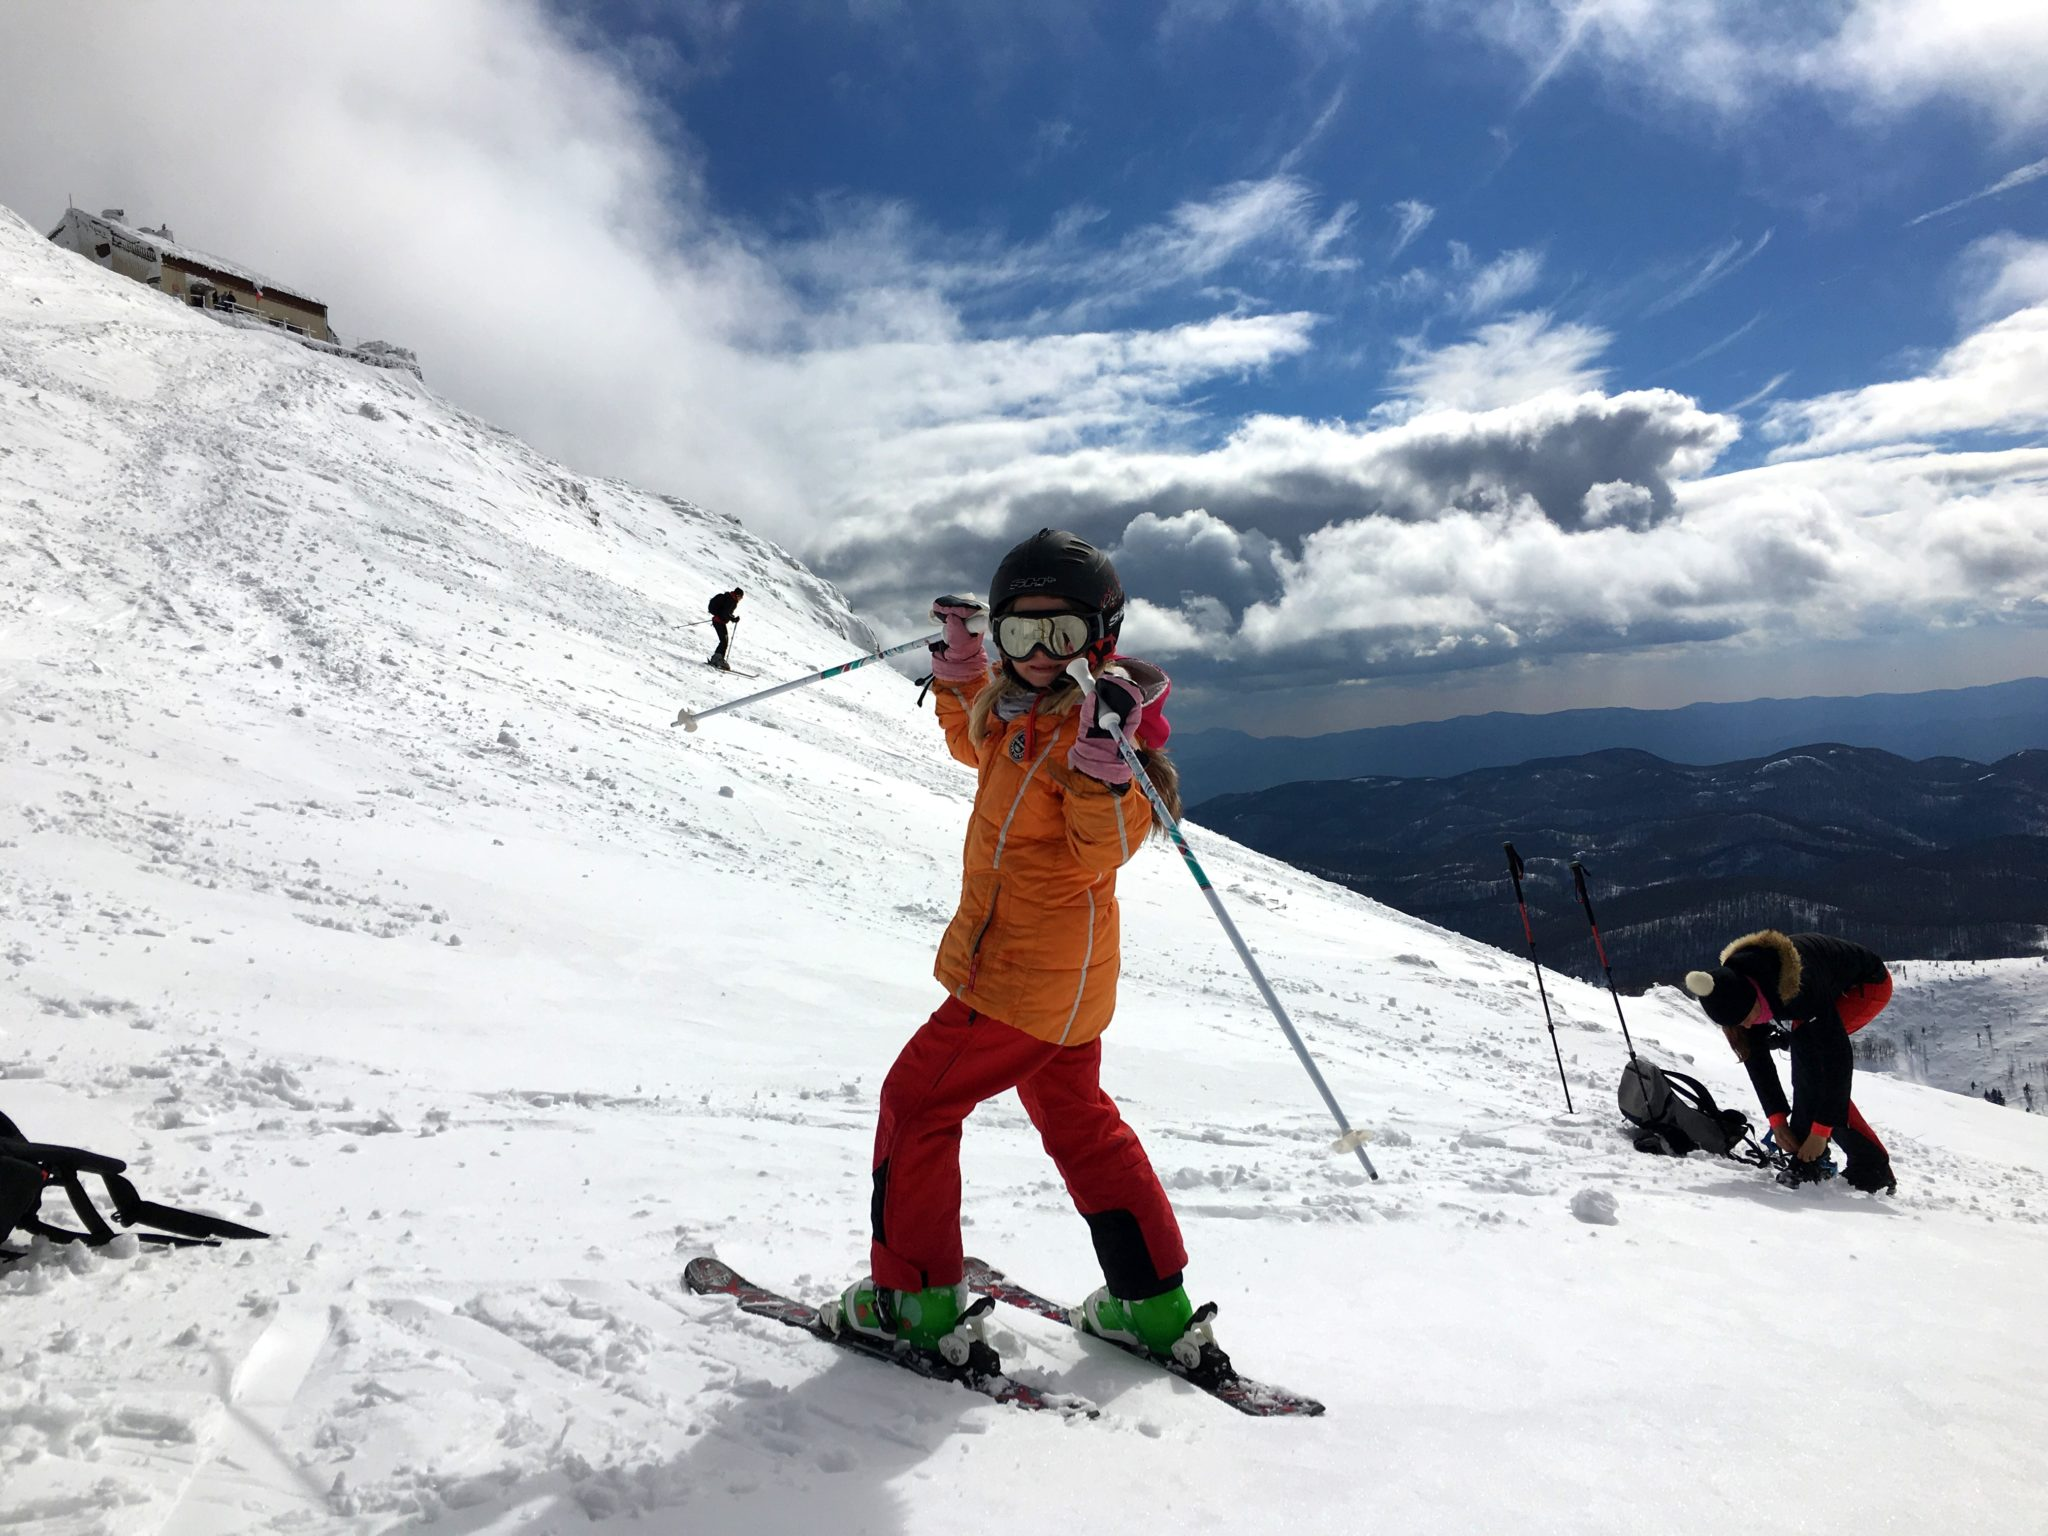 Get on those skis and start rolling! Meet the bravest 6-year old who nailed her first off-piste skiing from the very top down a 1.796-m or 5,900-Ft mountain. Photo by: Exploring Slovenia.